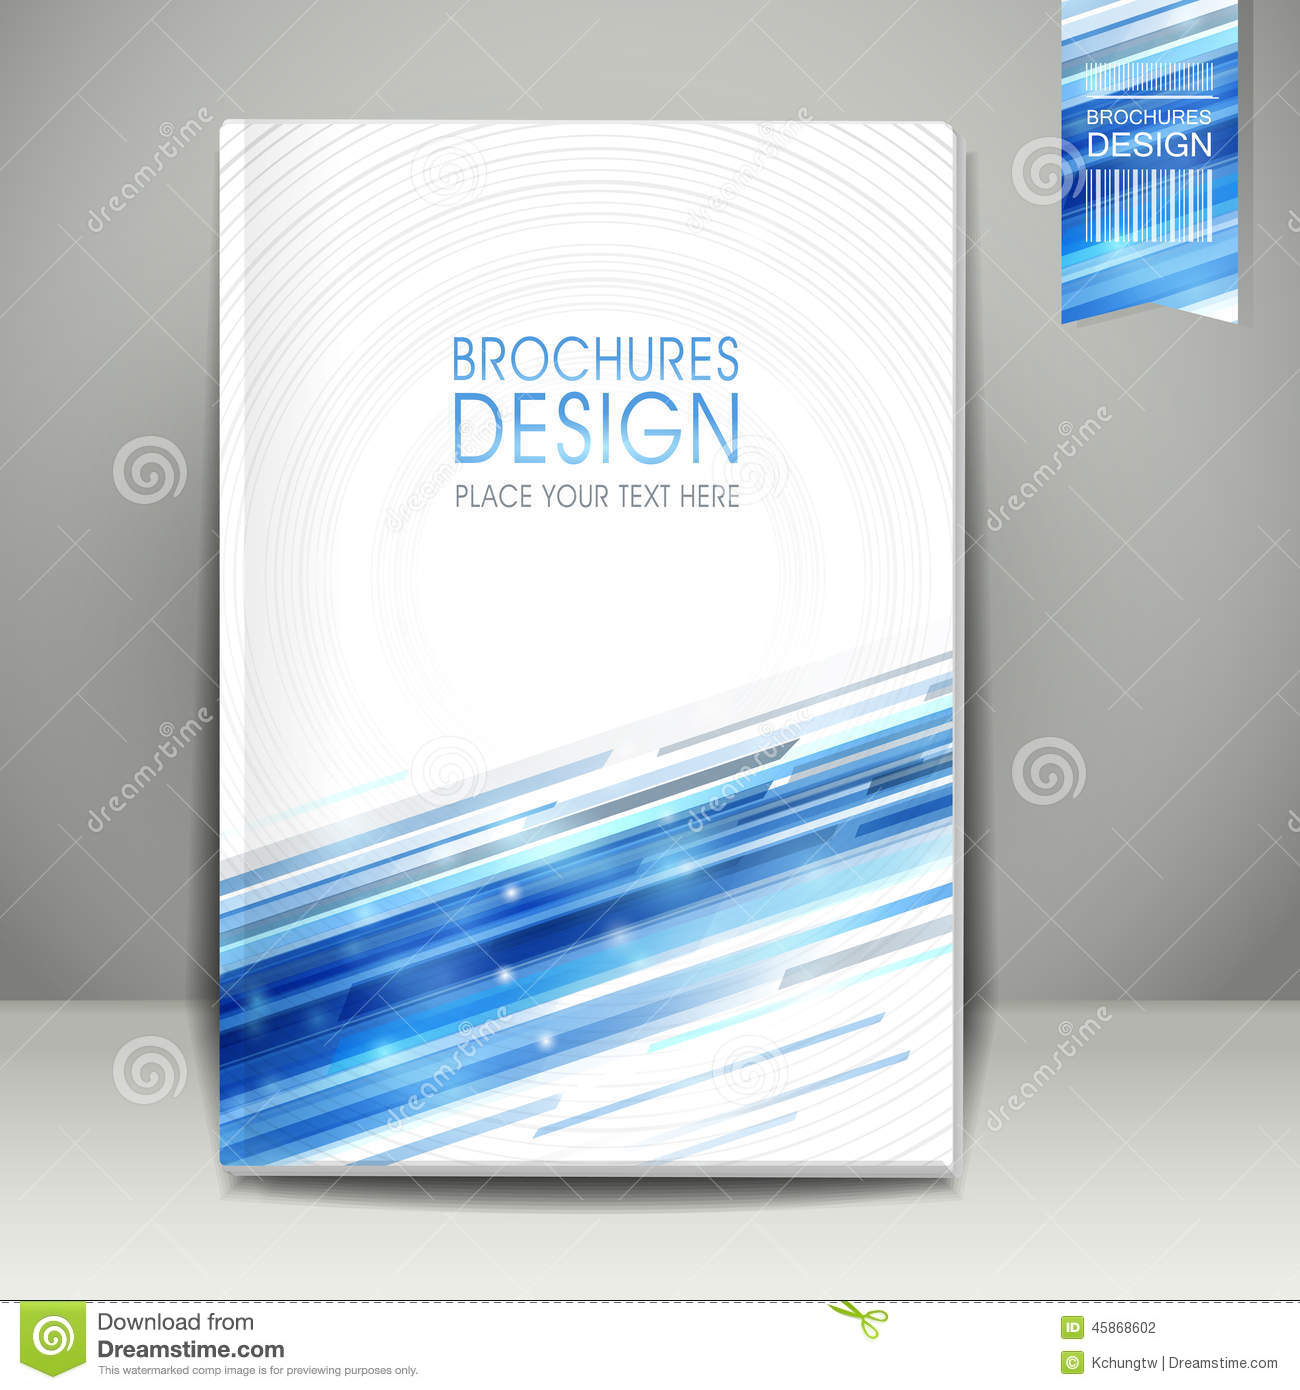 Background Design For Book Cover : Abstract technology background design for book cover stock